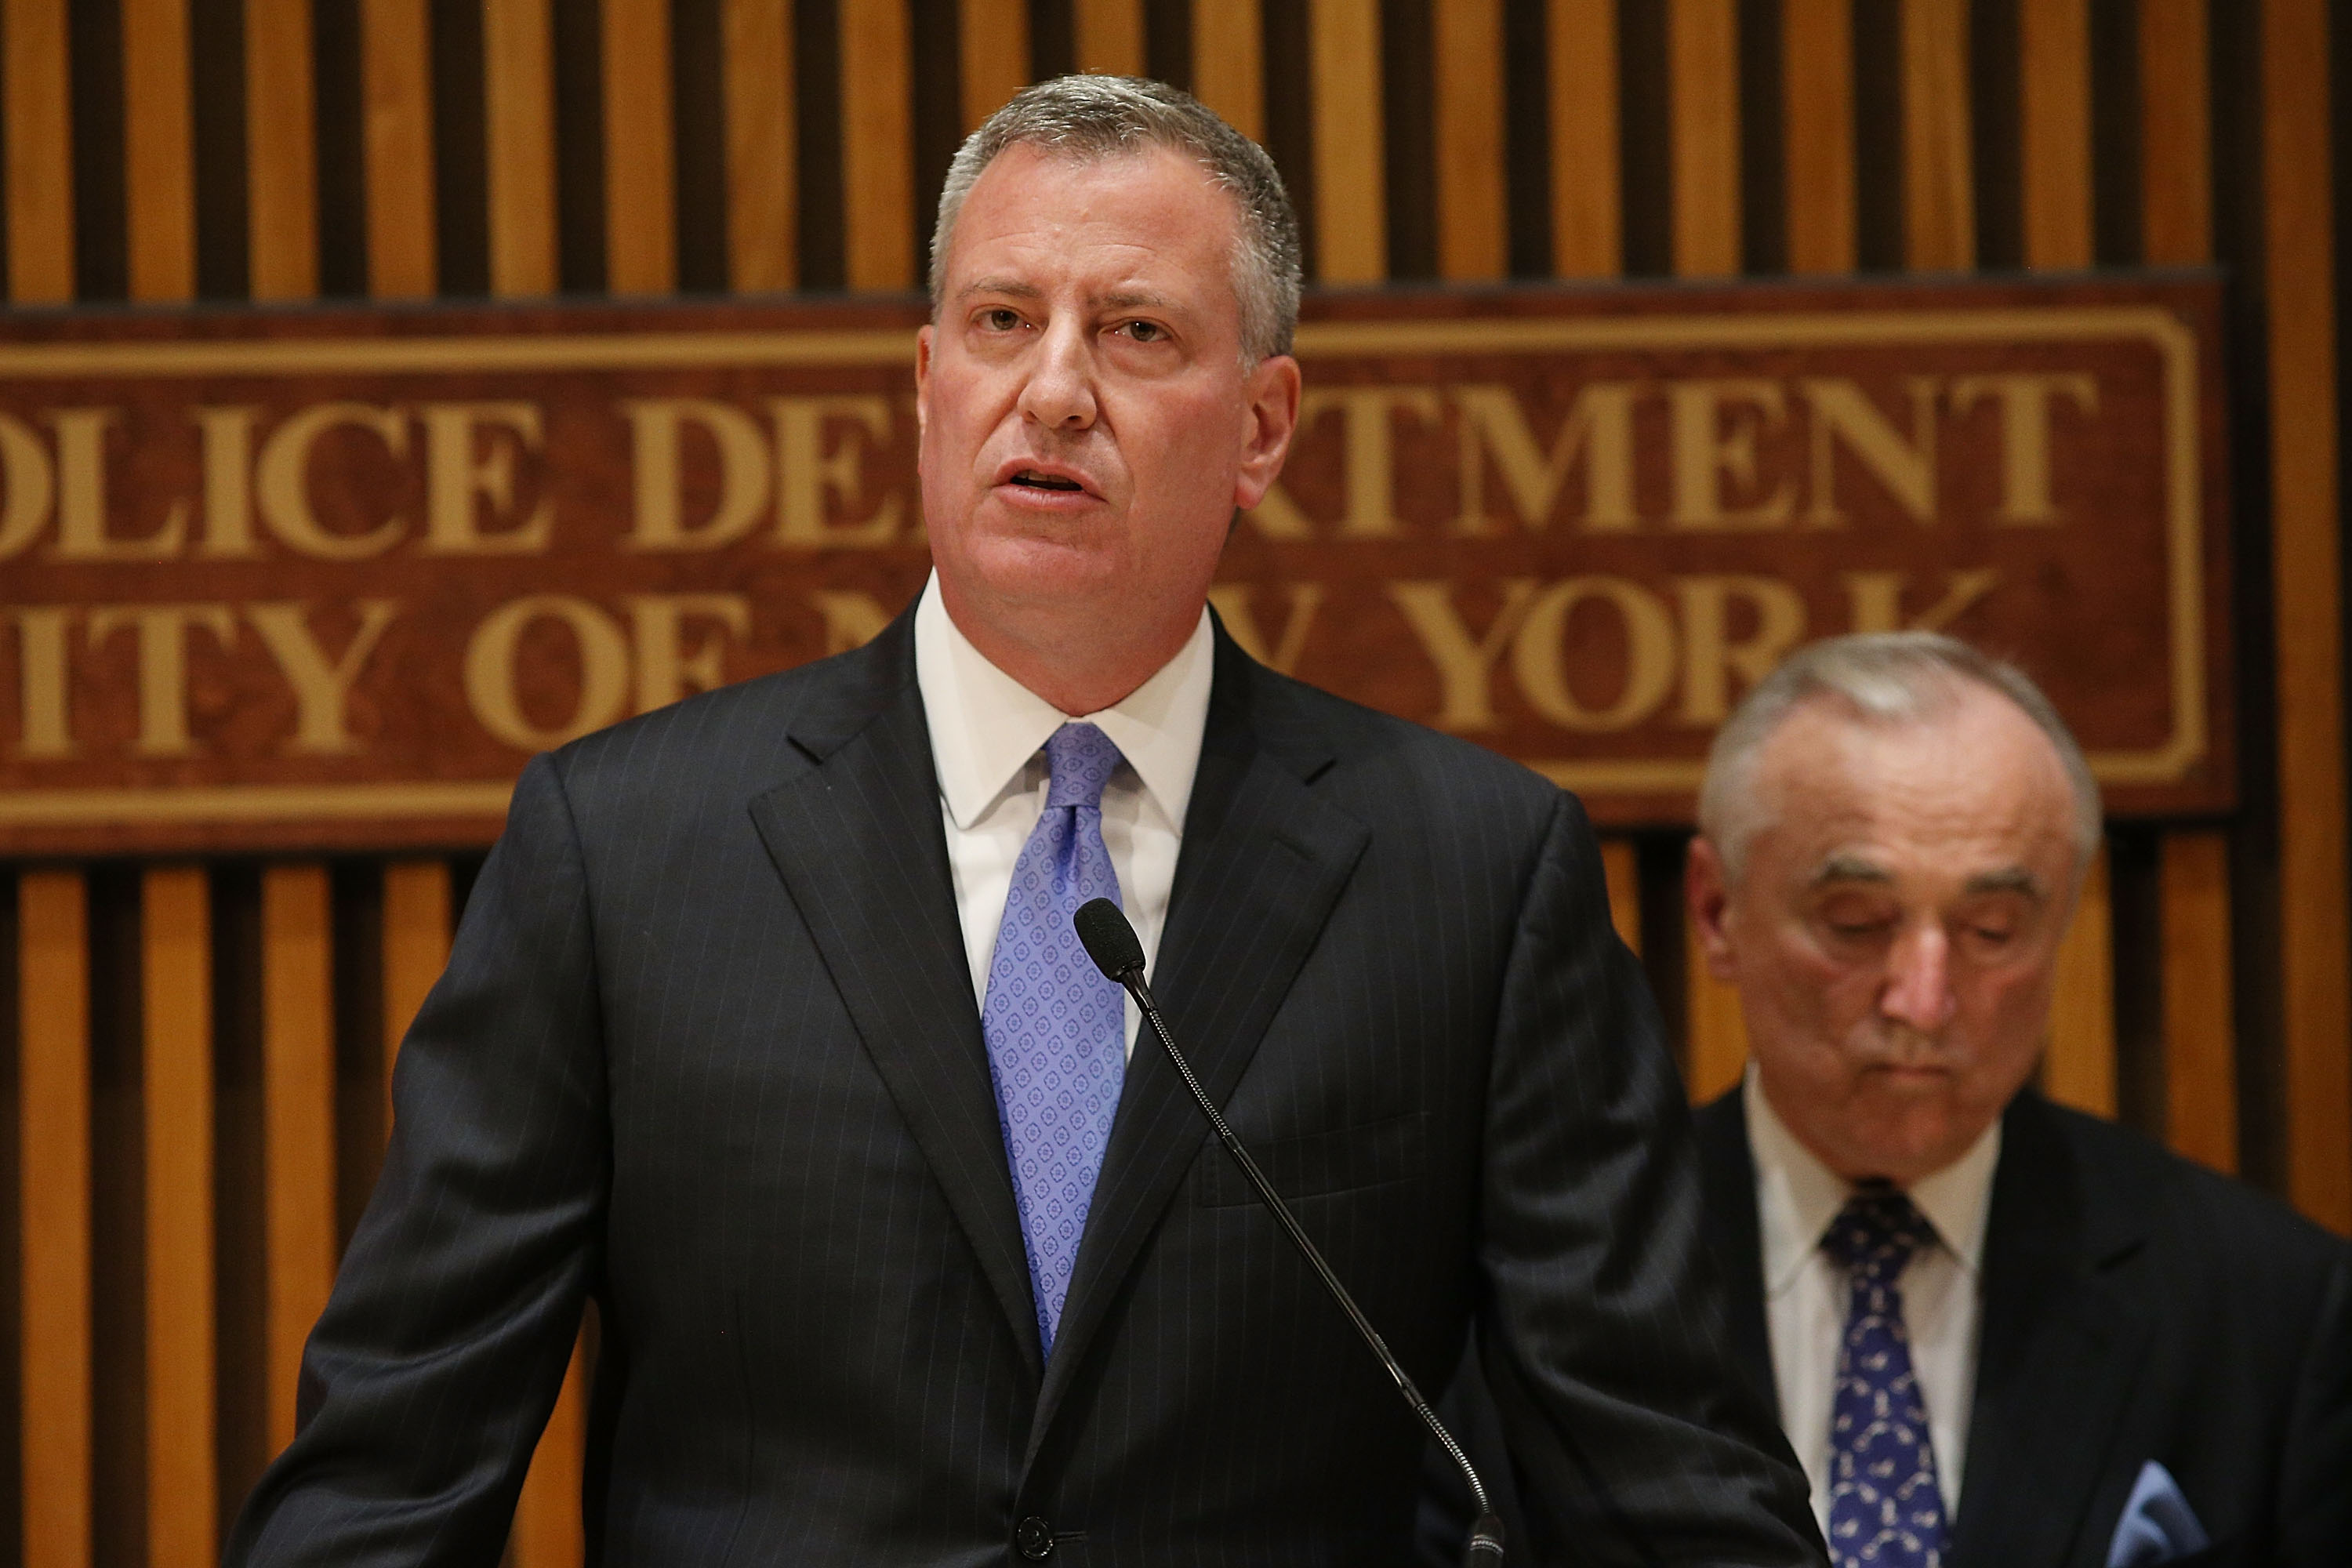 Mayor Bill de Blasio and Police Commissioner Bill Bratton. (Photo by Spencer Platt/Getty Images)